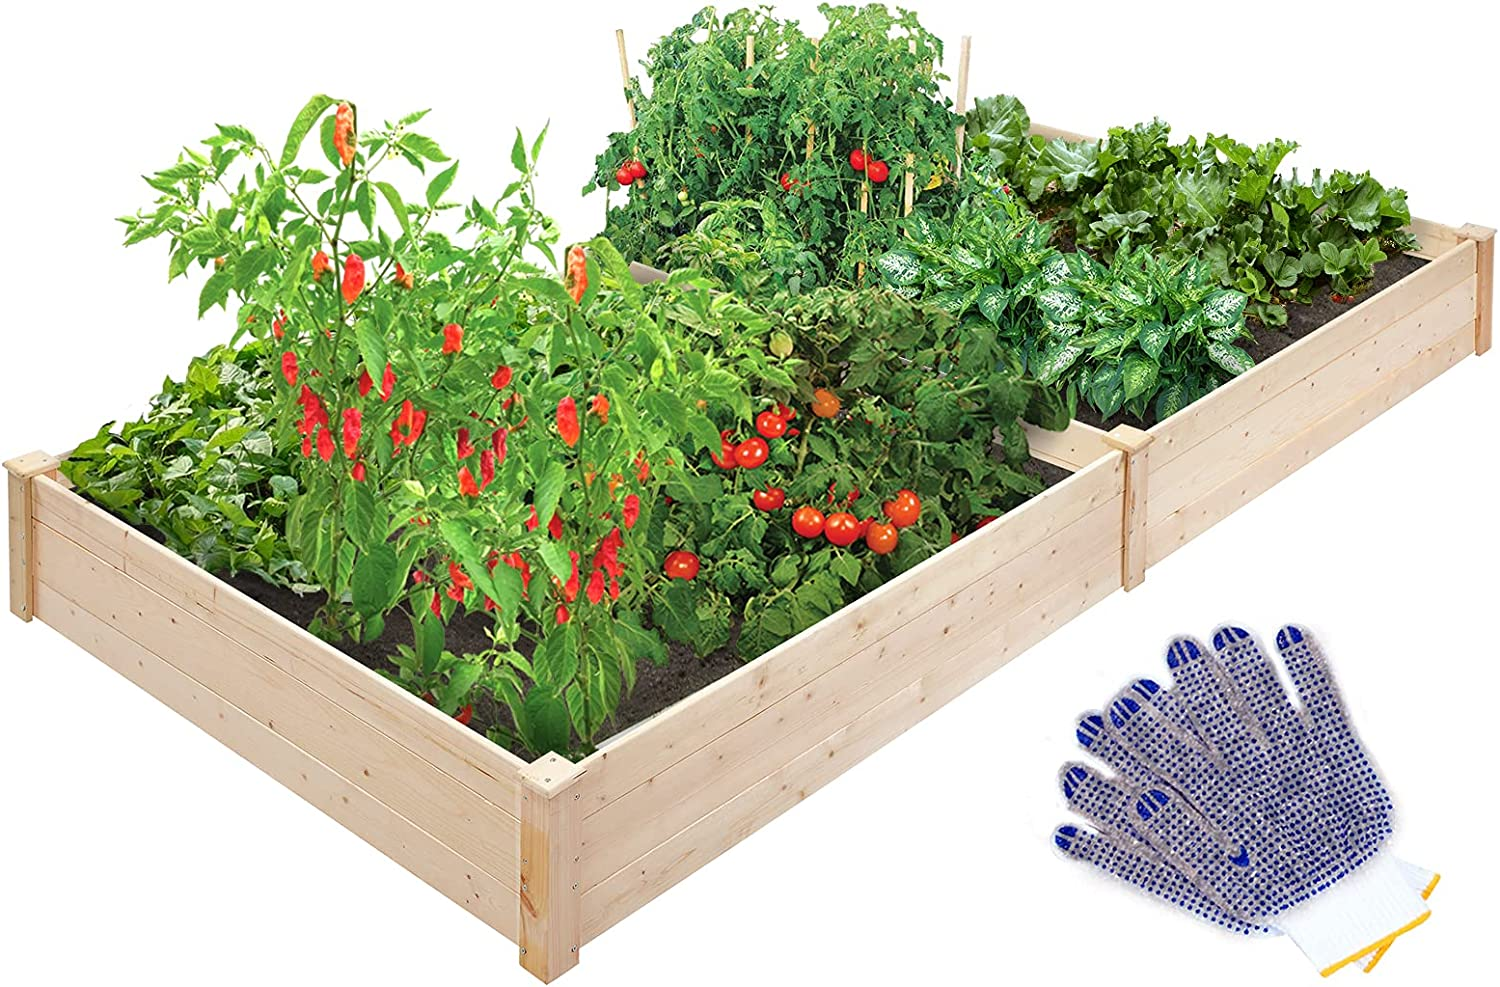 TMEE Raised Garden Bed Wooden Elevated Planter Garden Box for Vegetable Flower Herb Outdoor Solid Wood 92.5'' x 47.2'' x 10.2'' inches